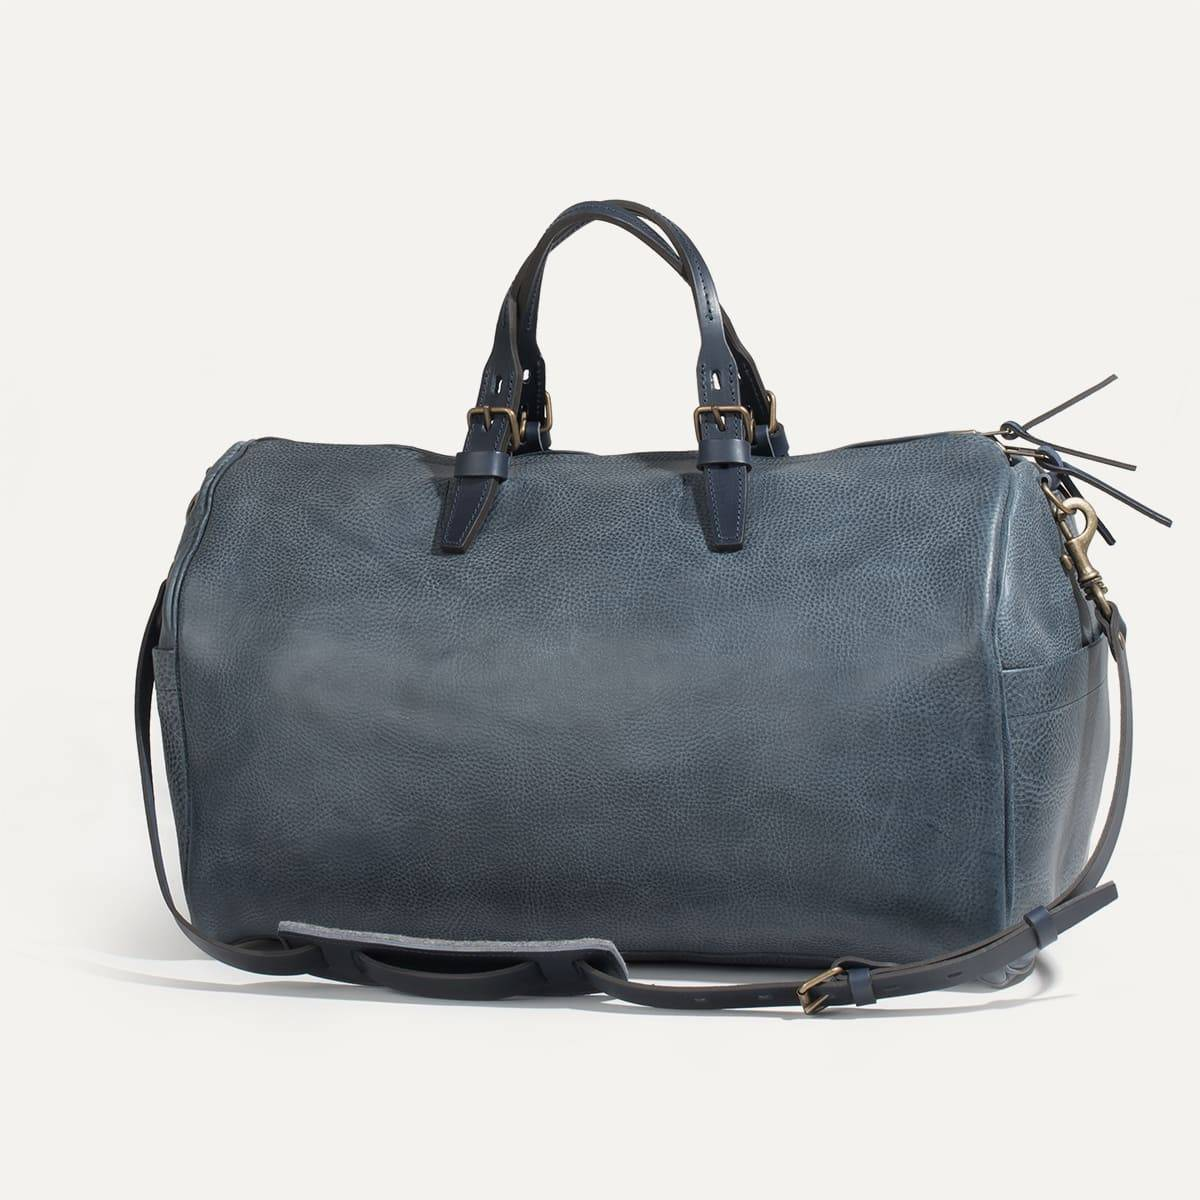 Hobo Travel bag - Indigo (image n°4)